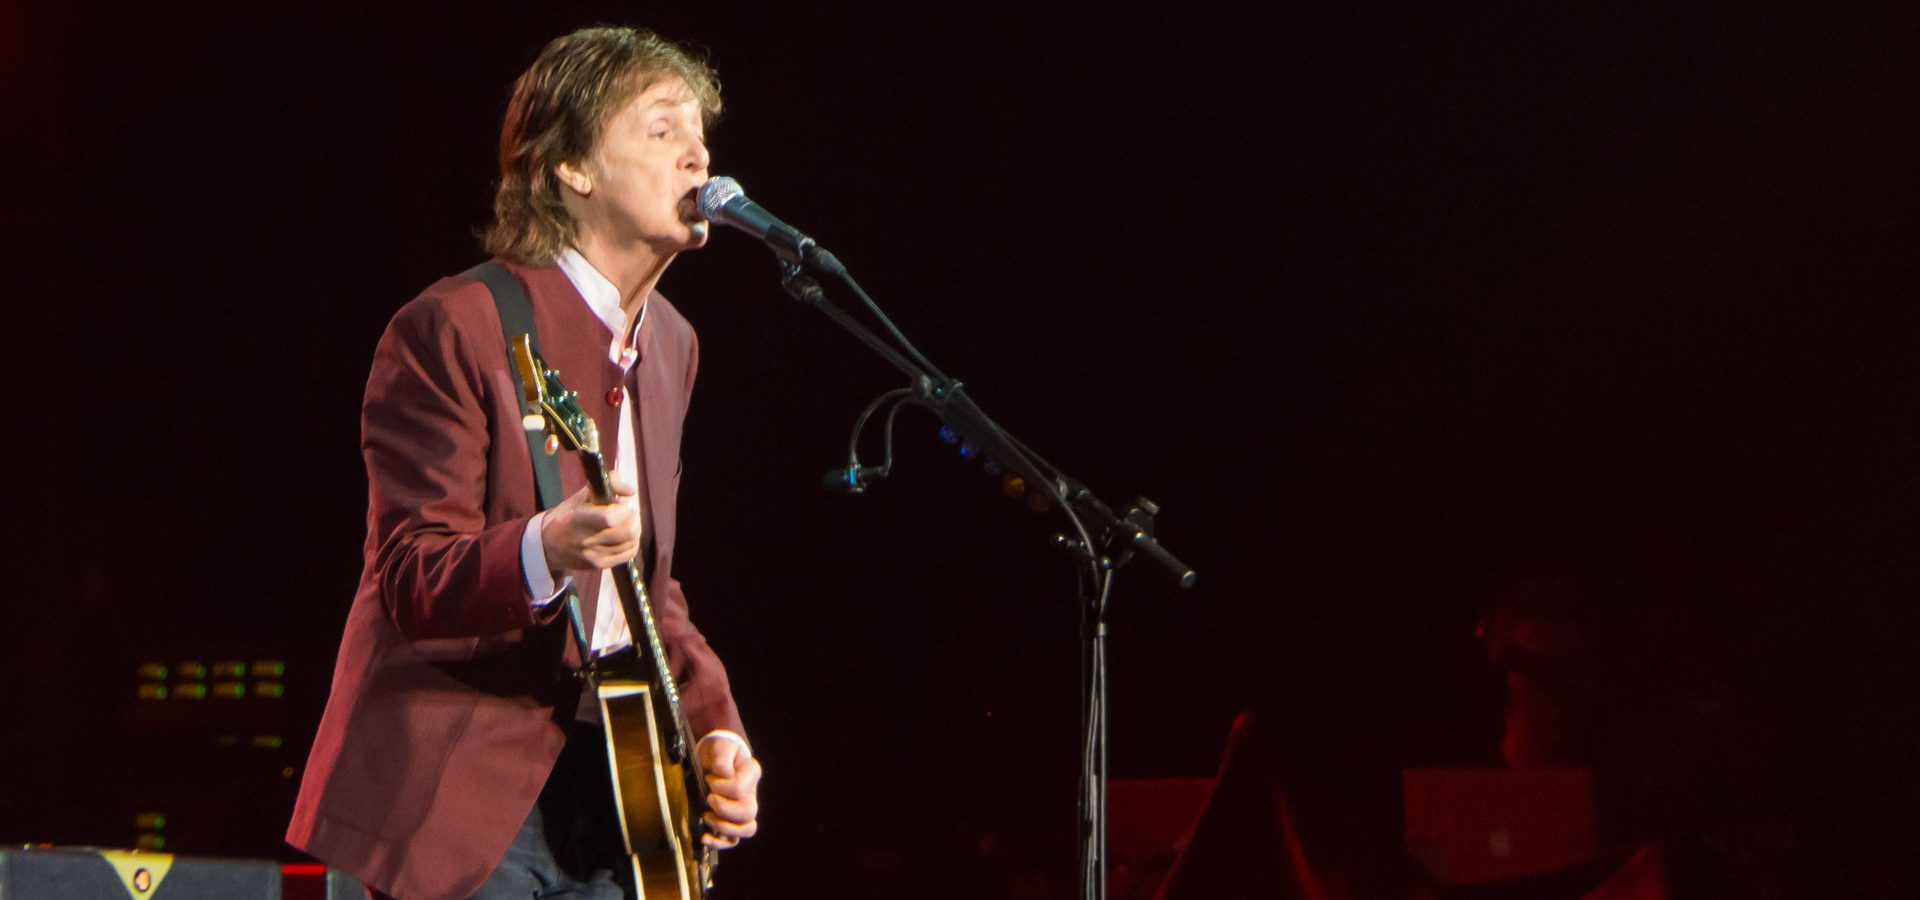 Paul McCartney Greatest Songs! Celebrate His Birthday By Listening Them Today